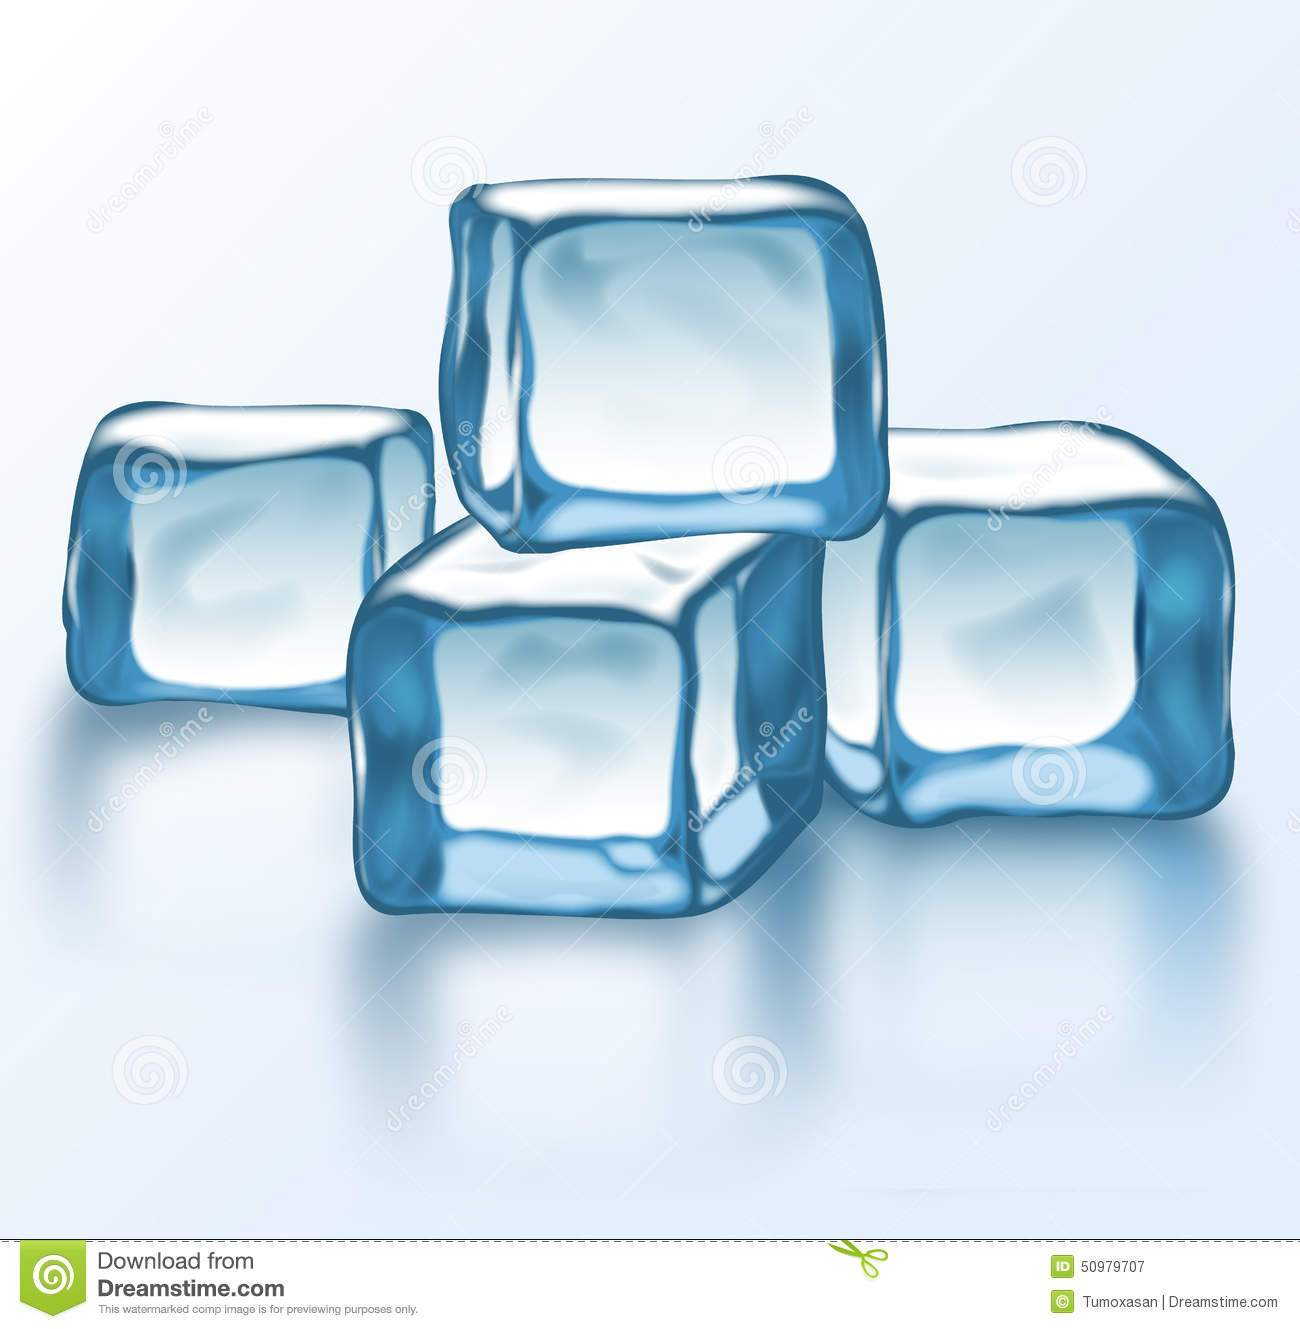 Ice block clipart clipart freeuse download Ice block clipart 6 » Clipart Portal clipart freeuse download